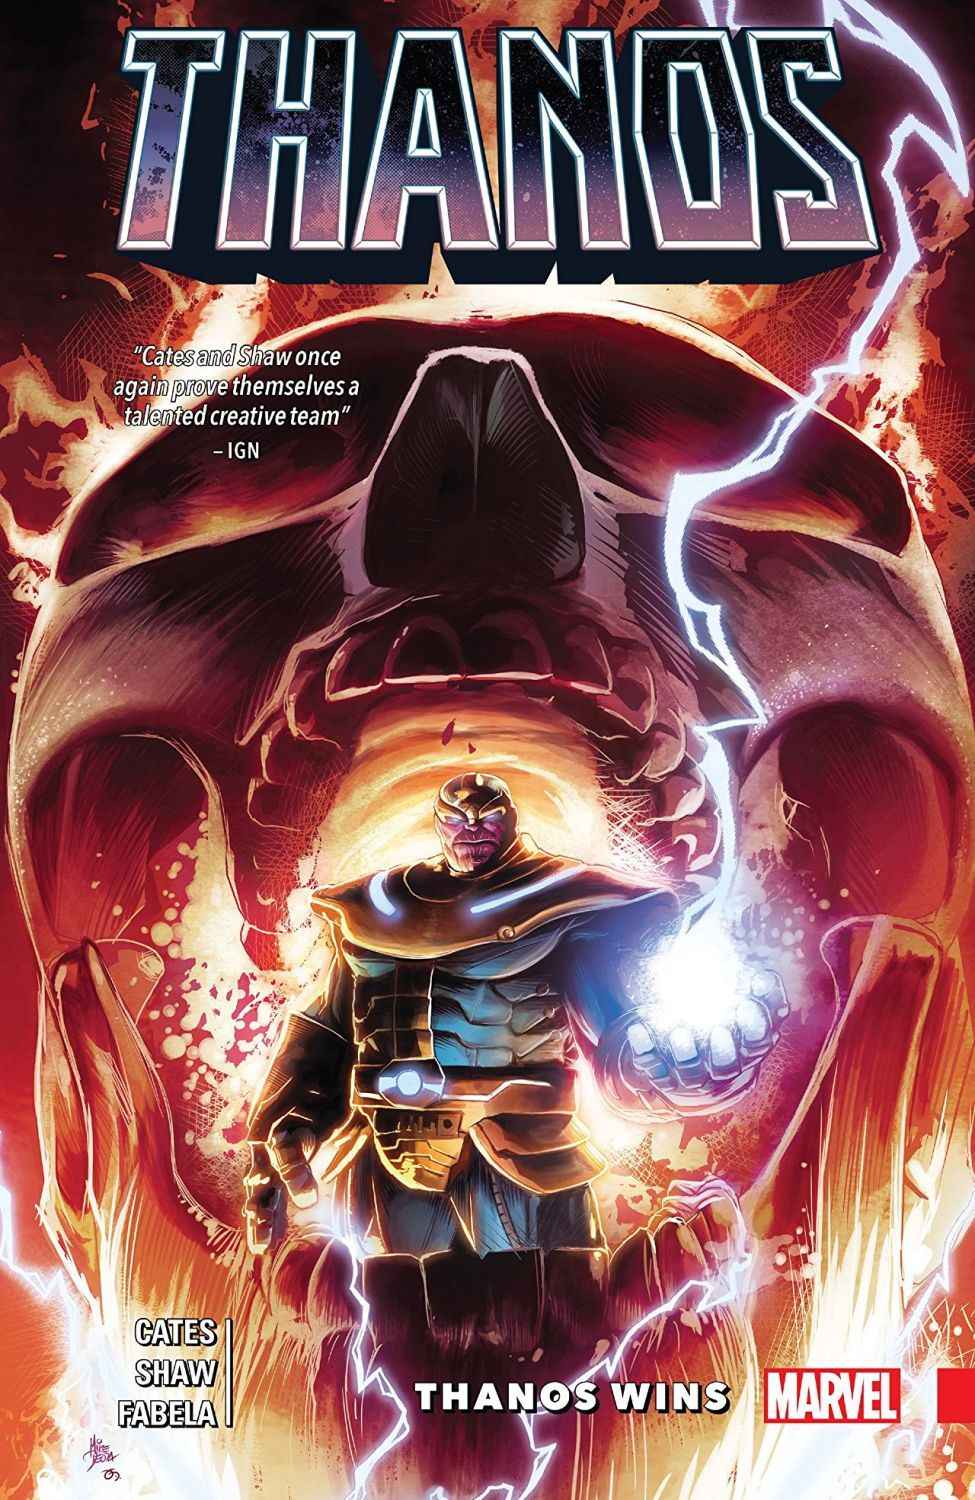 Thanos Wins by Donny Cates - 1